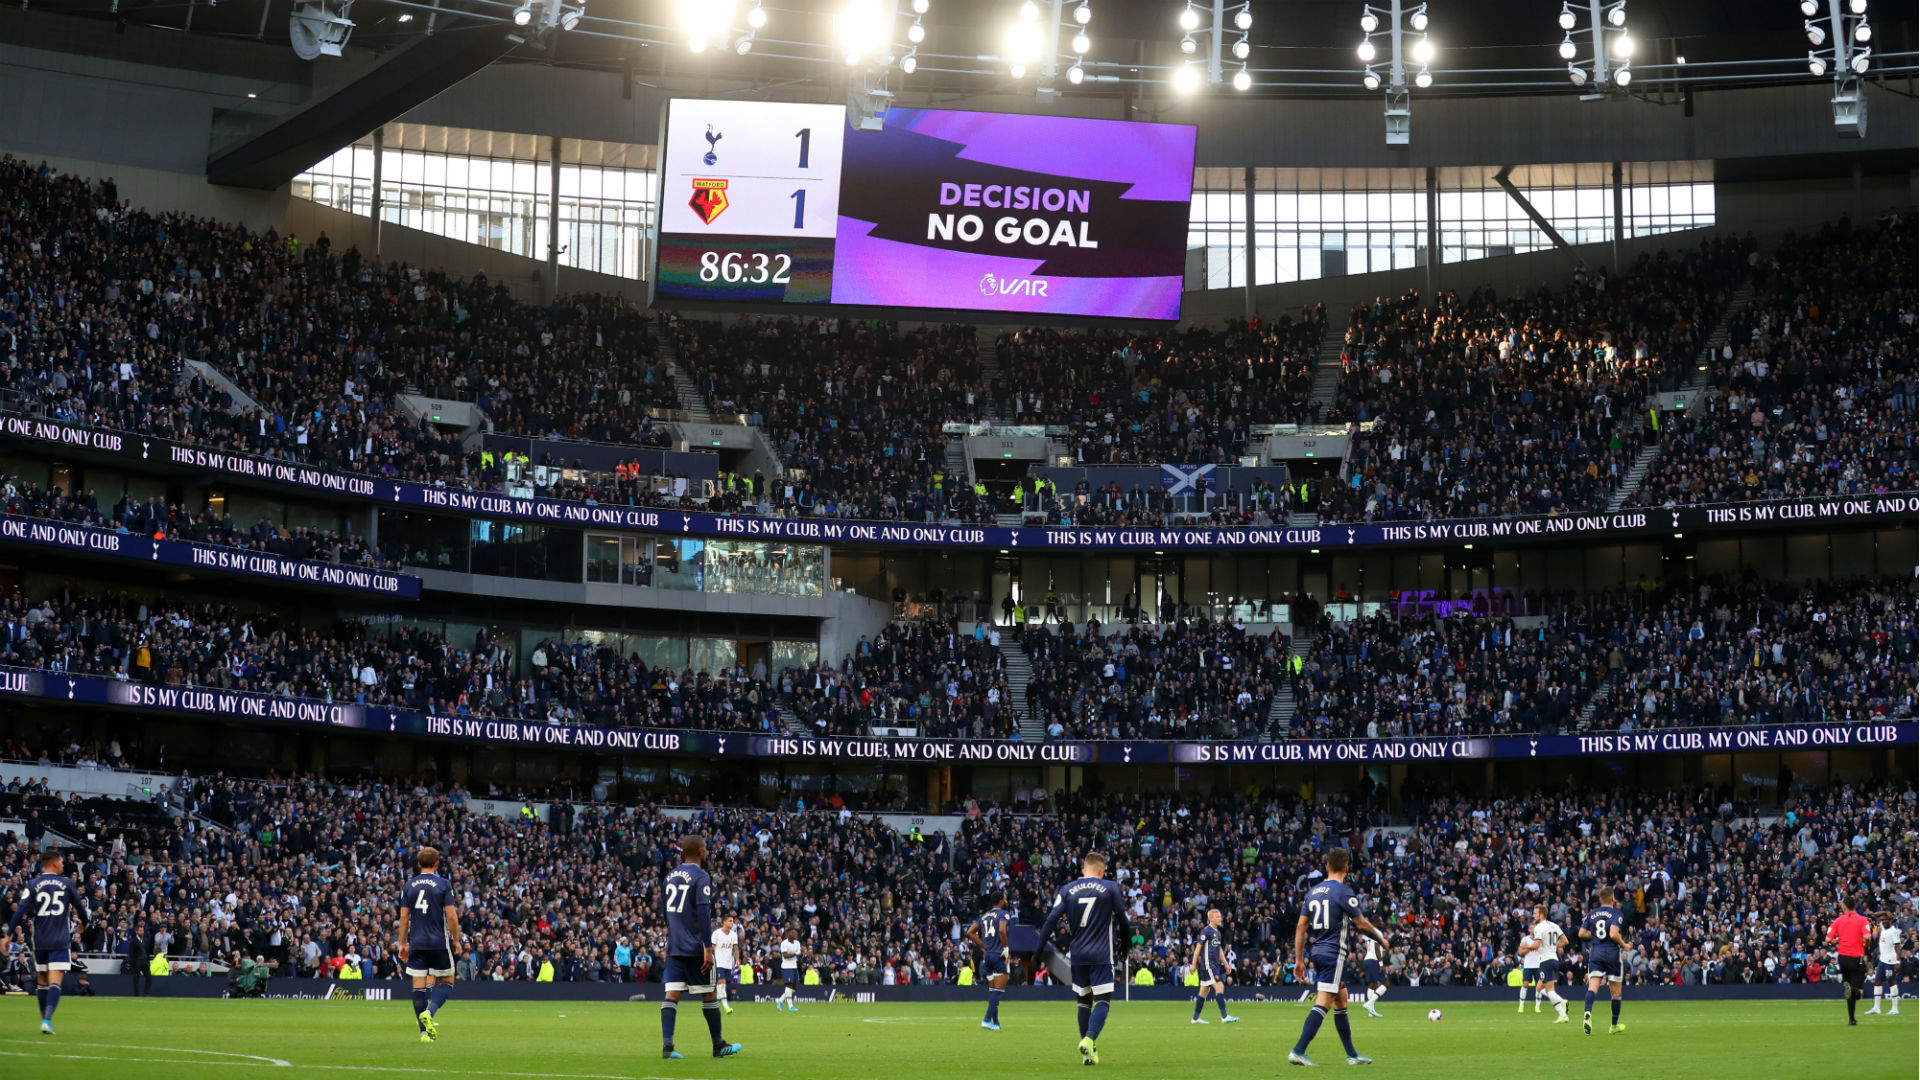 It's nothing to do with us - Pochettino explains VAR confusion over Alli equaliser